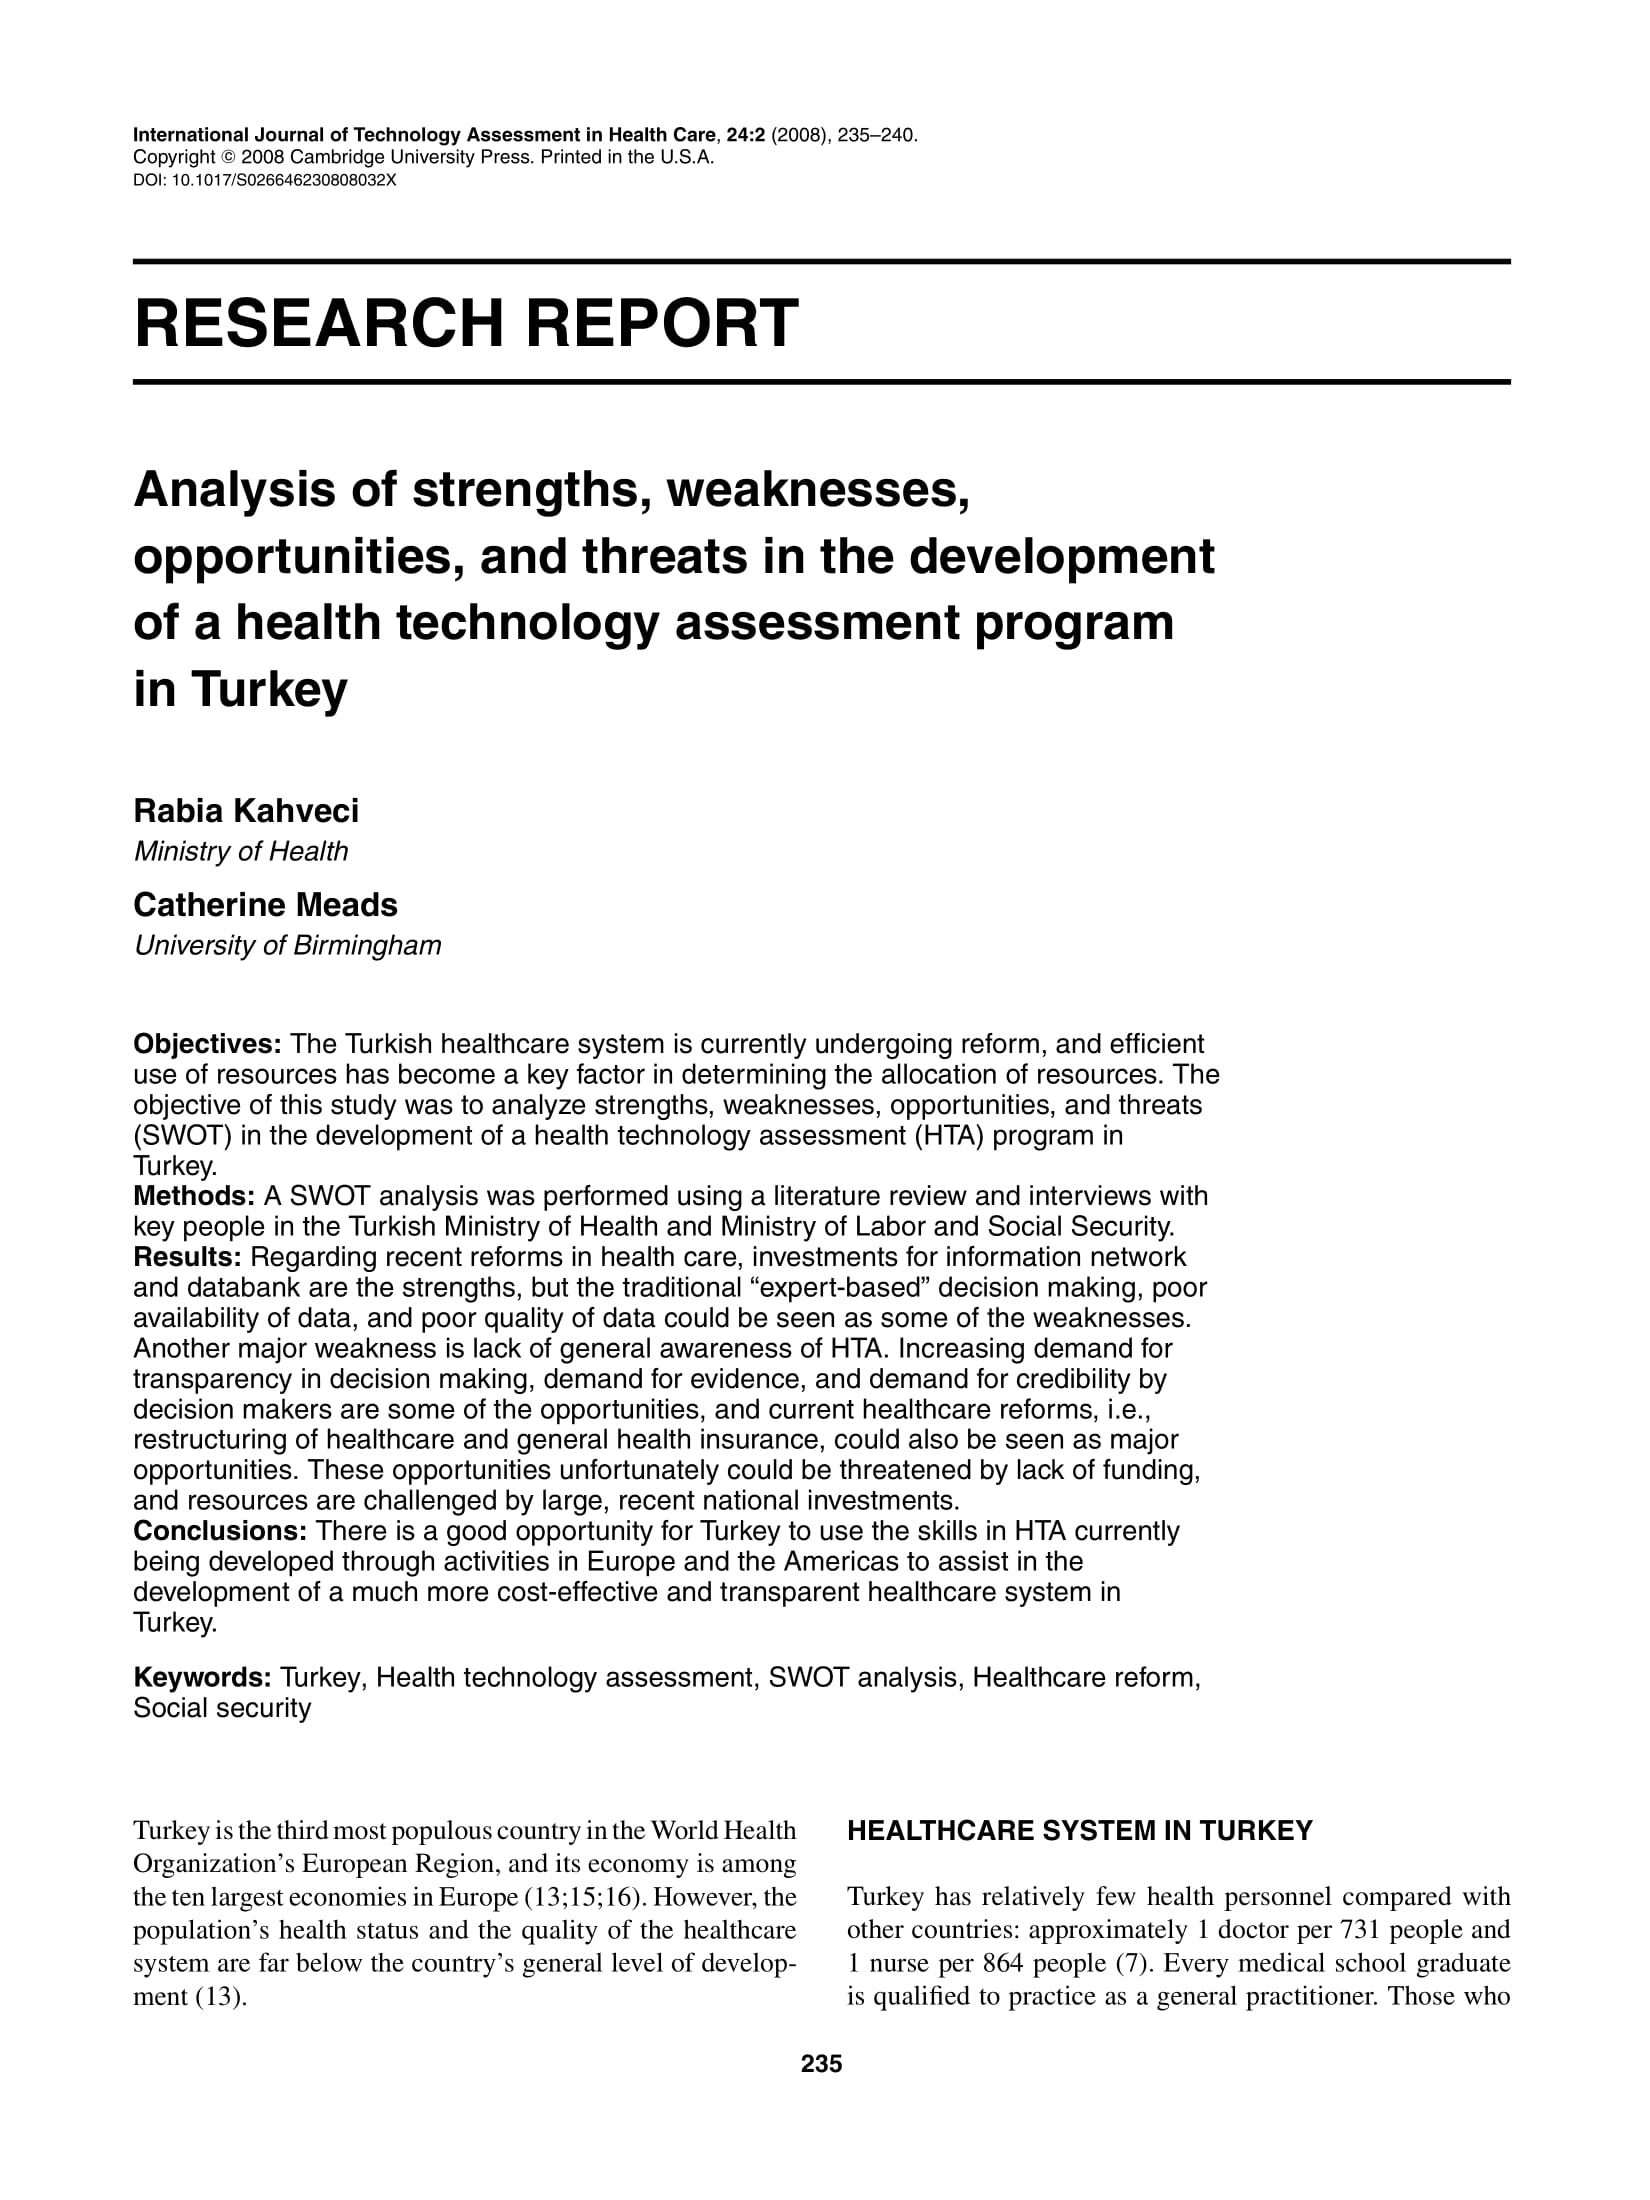 analysis of strengths weaknesses opportunities and threats in the development of a health technology assessment program example 1